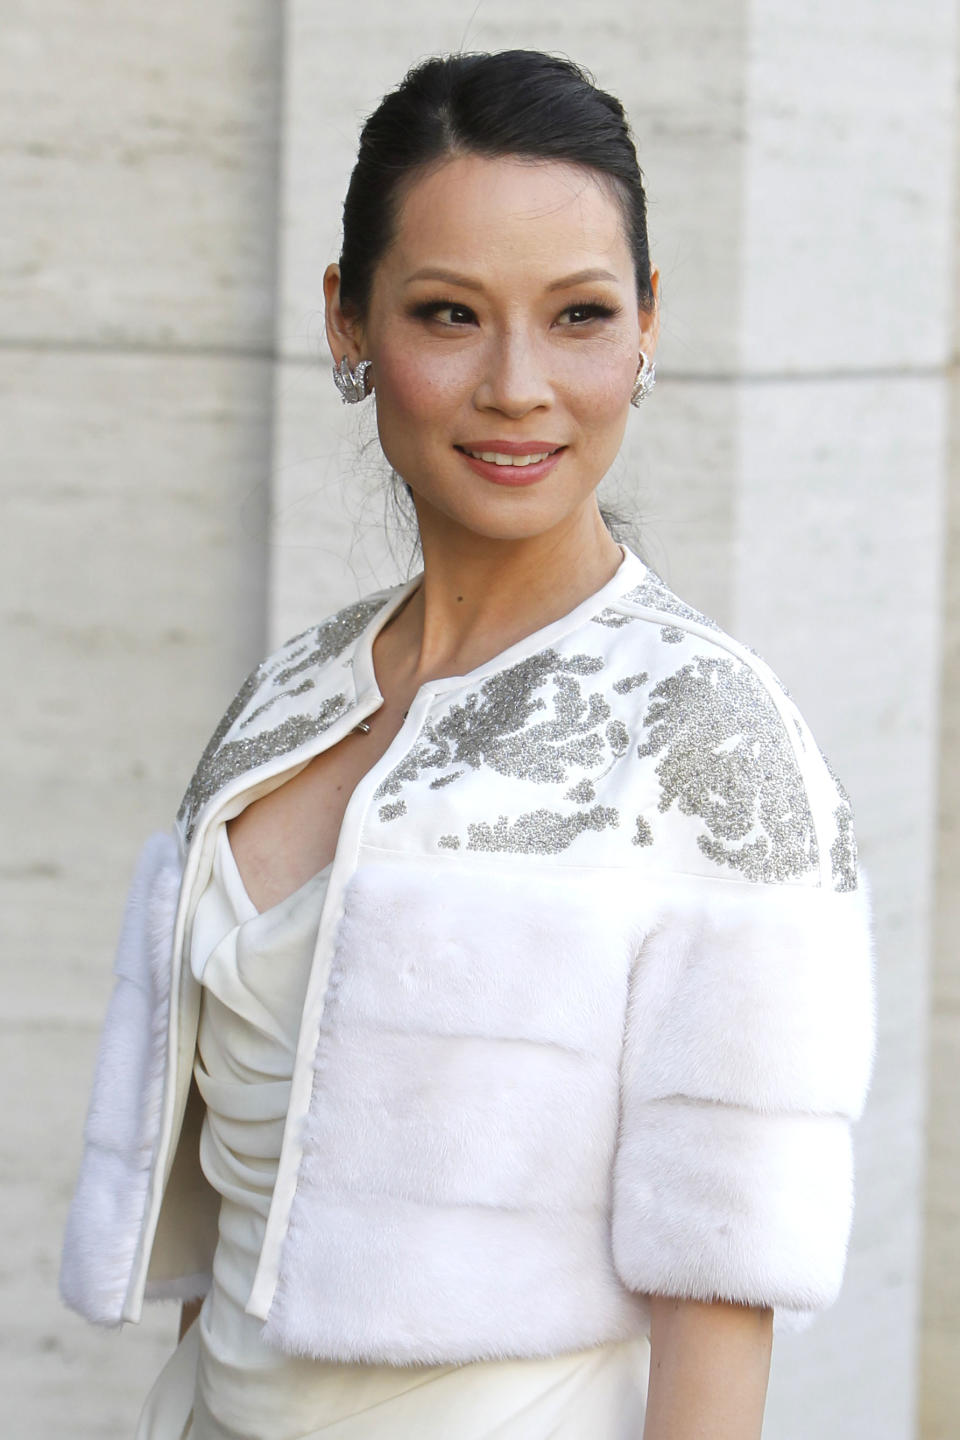 Actress Lucy Liu arrives for the American Ballet Theatre Spring Gala at the Metropolitan Opera House, Monday, May 13, 2013 in New York. (Photo by Jason DeCrow/Invision/AP)